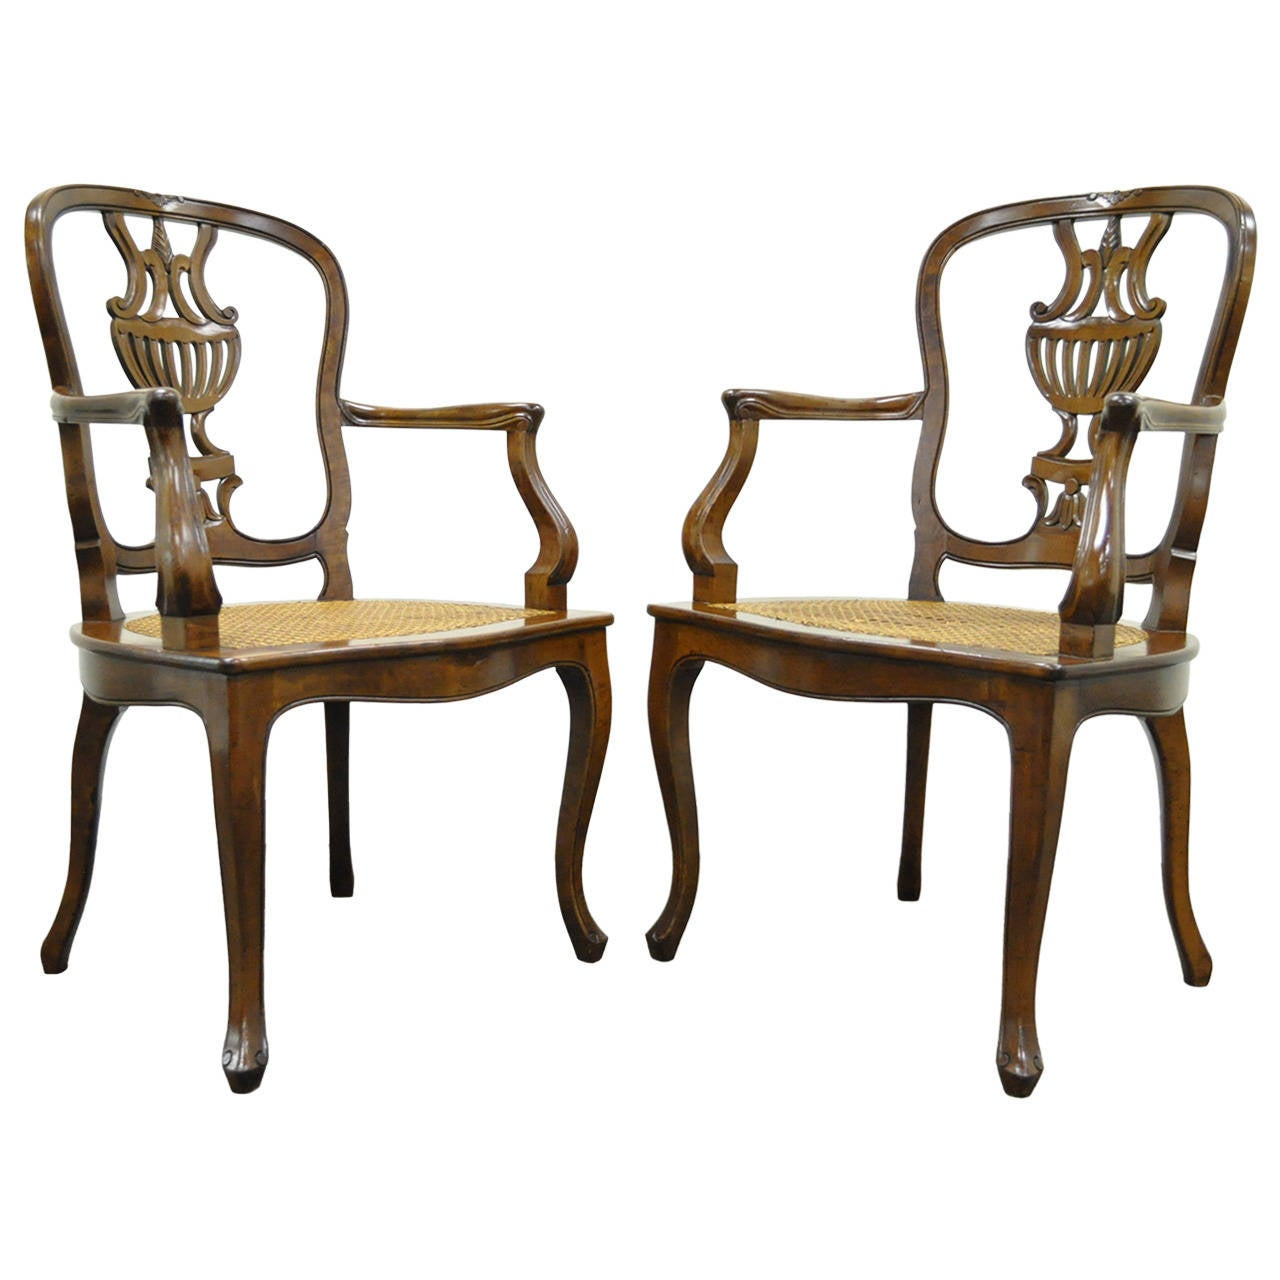 Hand-carved Venetian armchairs, late 20th century, offered by Refined Furnishings